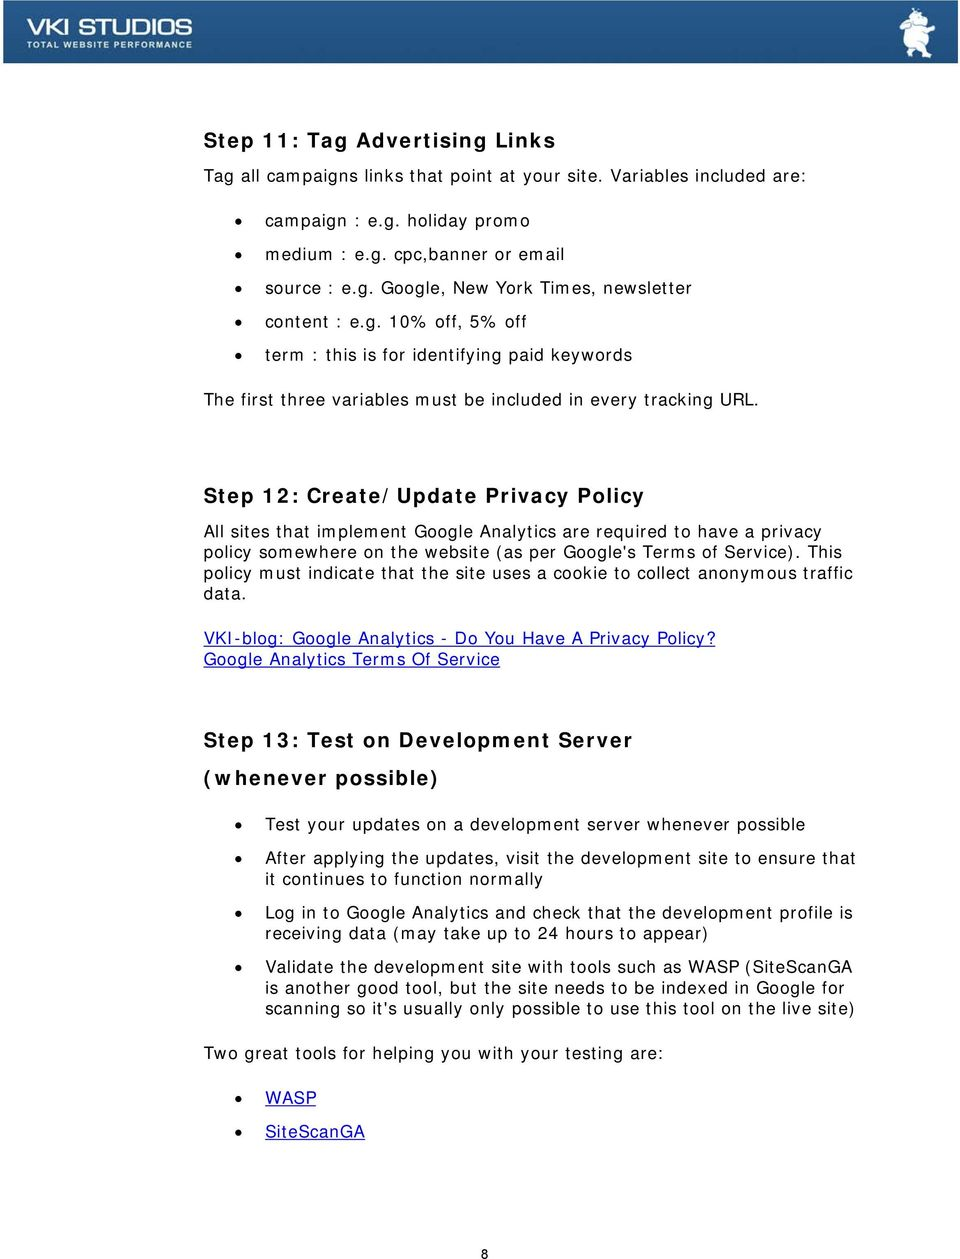 Step 12: Create/Update Privacy Policy All sites that implement Google Analytics are required to have a privacy policy somewhere on the website (as per Google's Terms of Service).